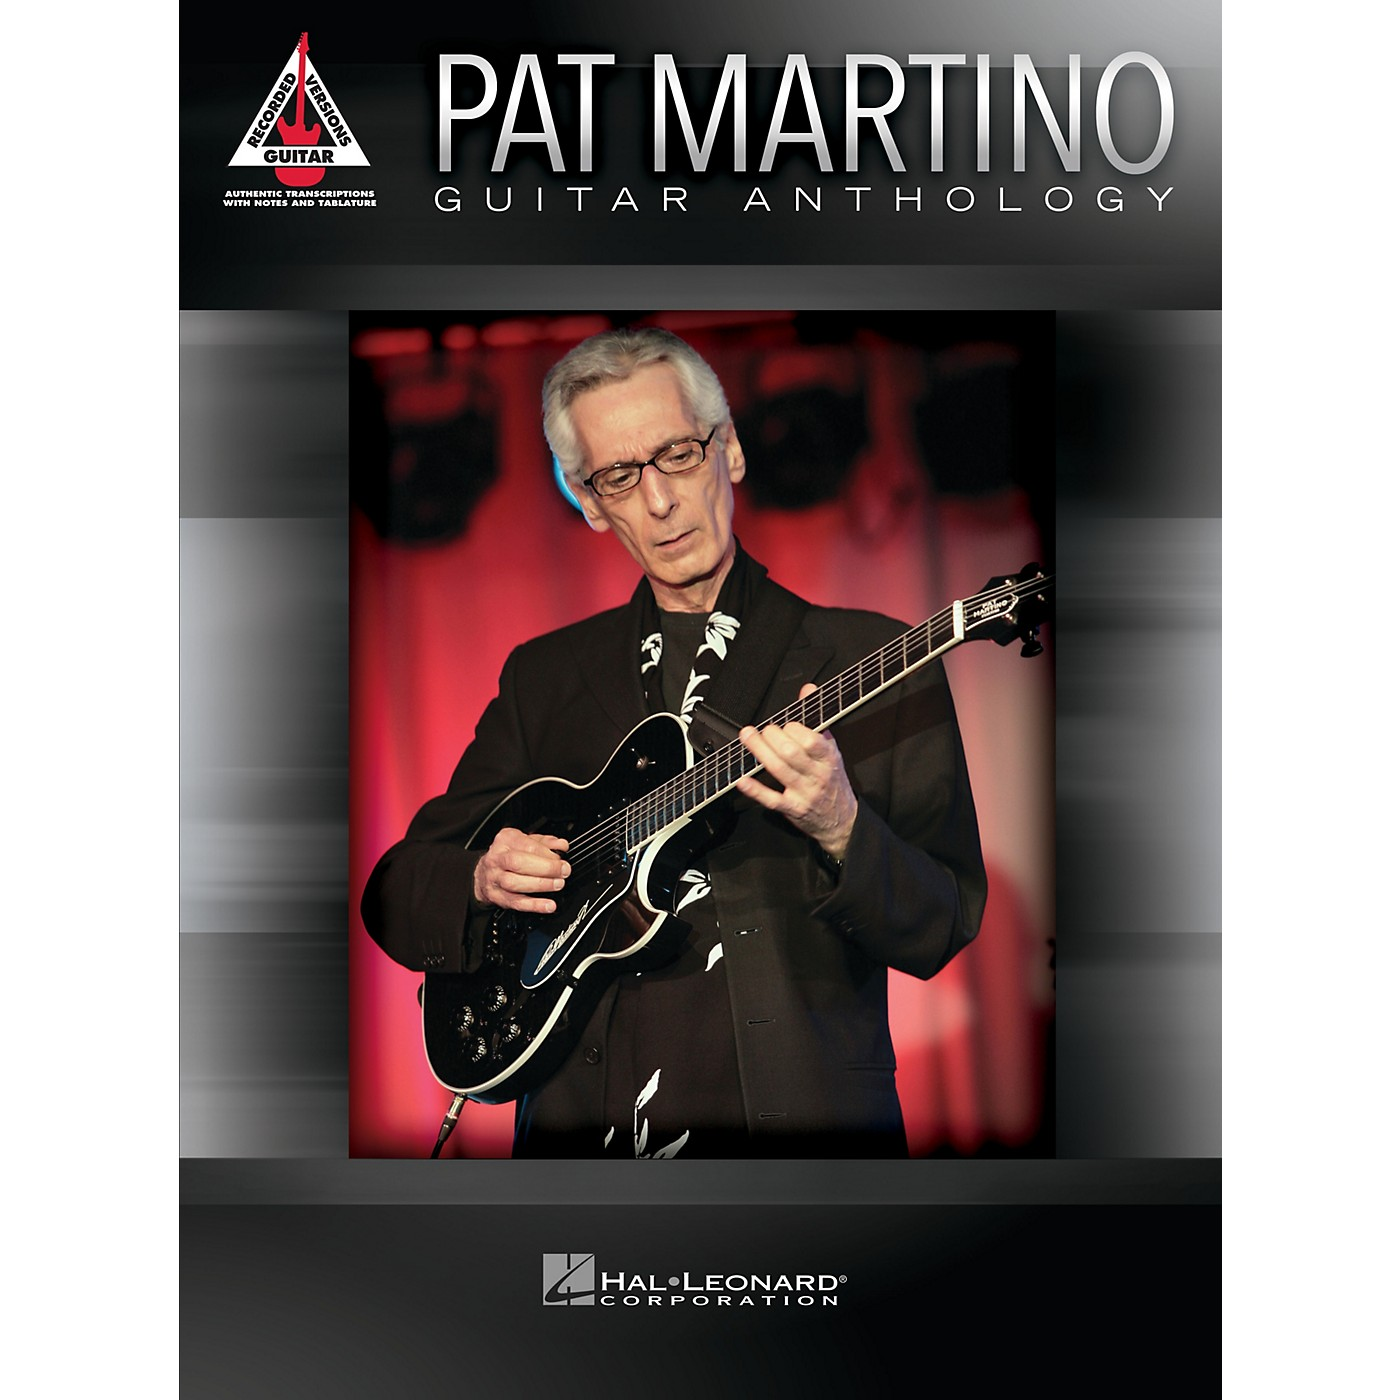 Hal Leonard Pat Martino - Guitar Anthology Guitar Recorded Version Series Softcover Performed by Pat Martino thumbnail